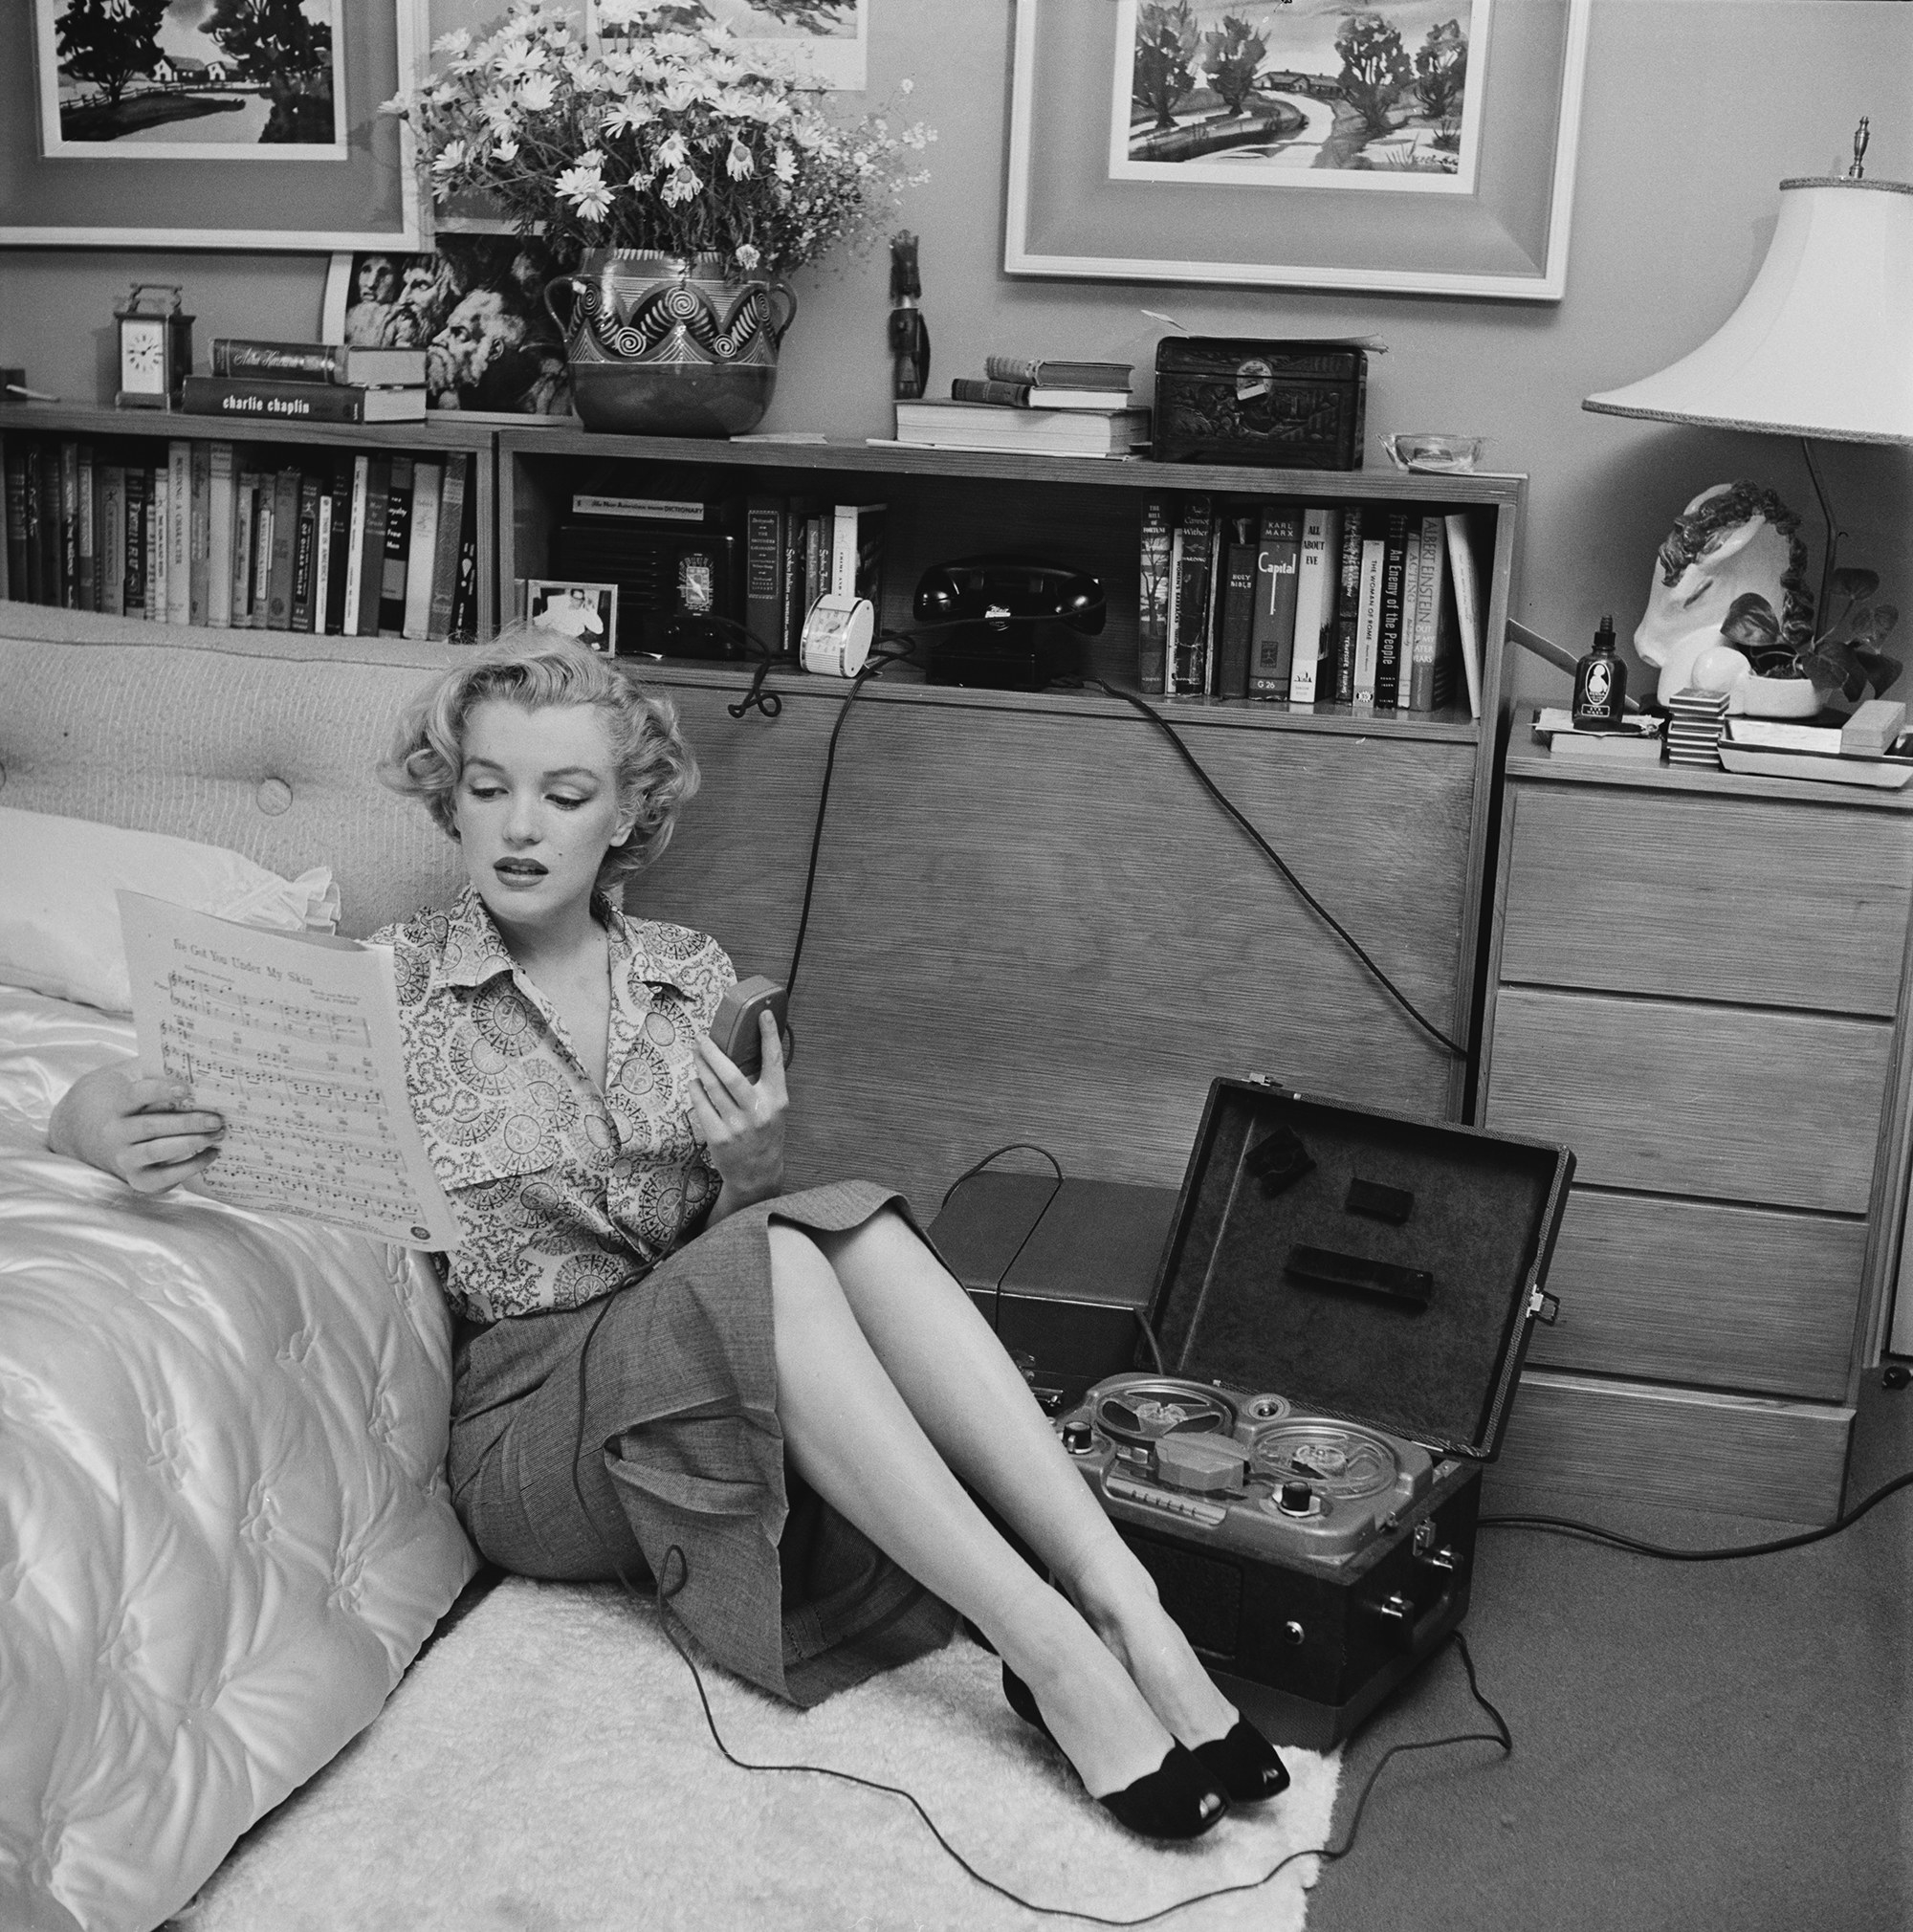 Marilyn Monroe holds a microphone and sits on the floor next to a recording device